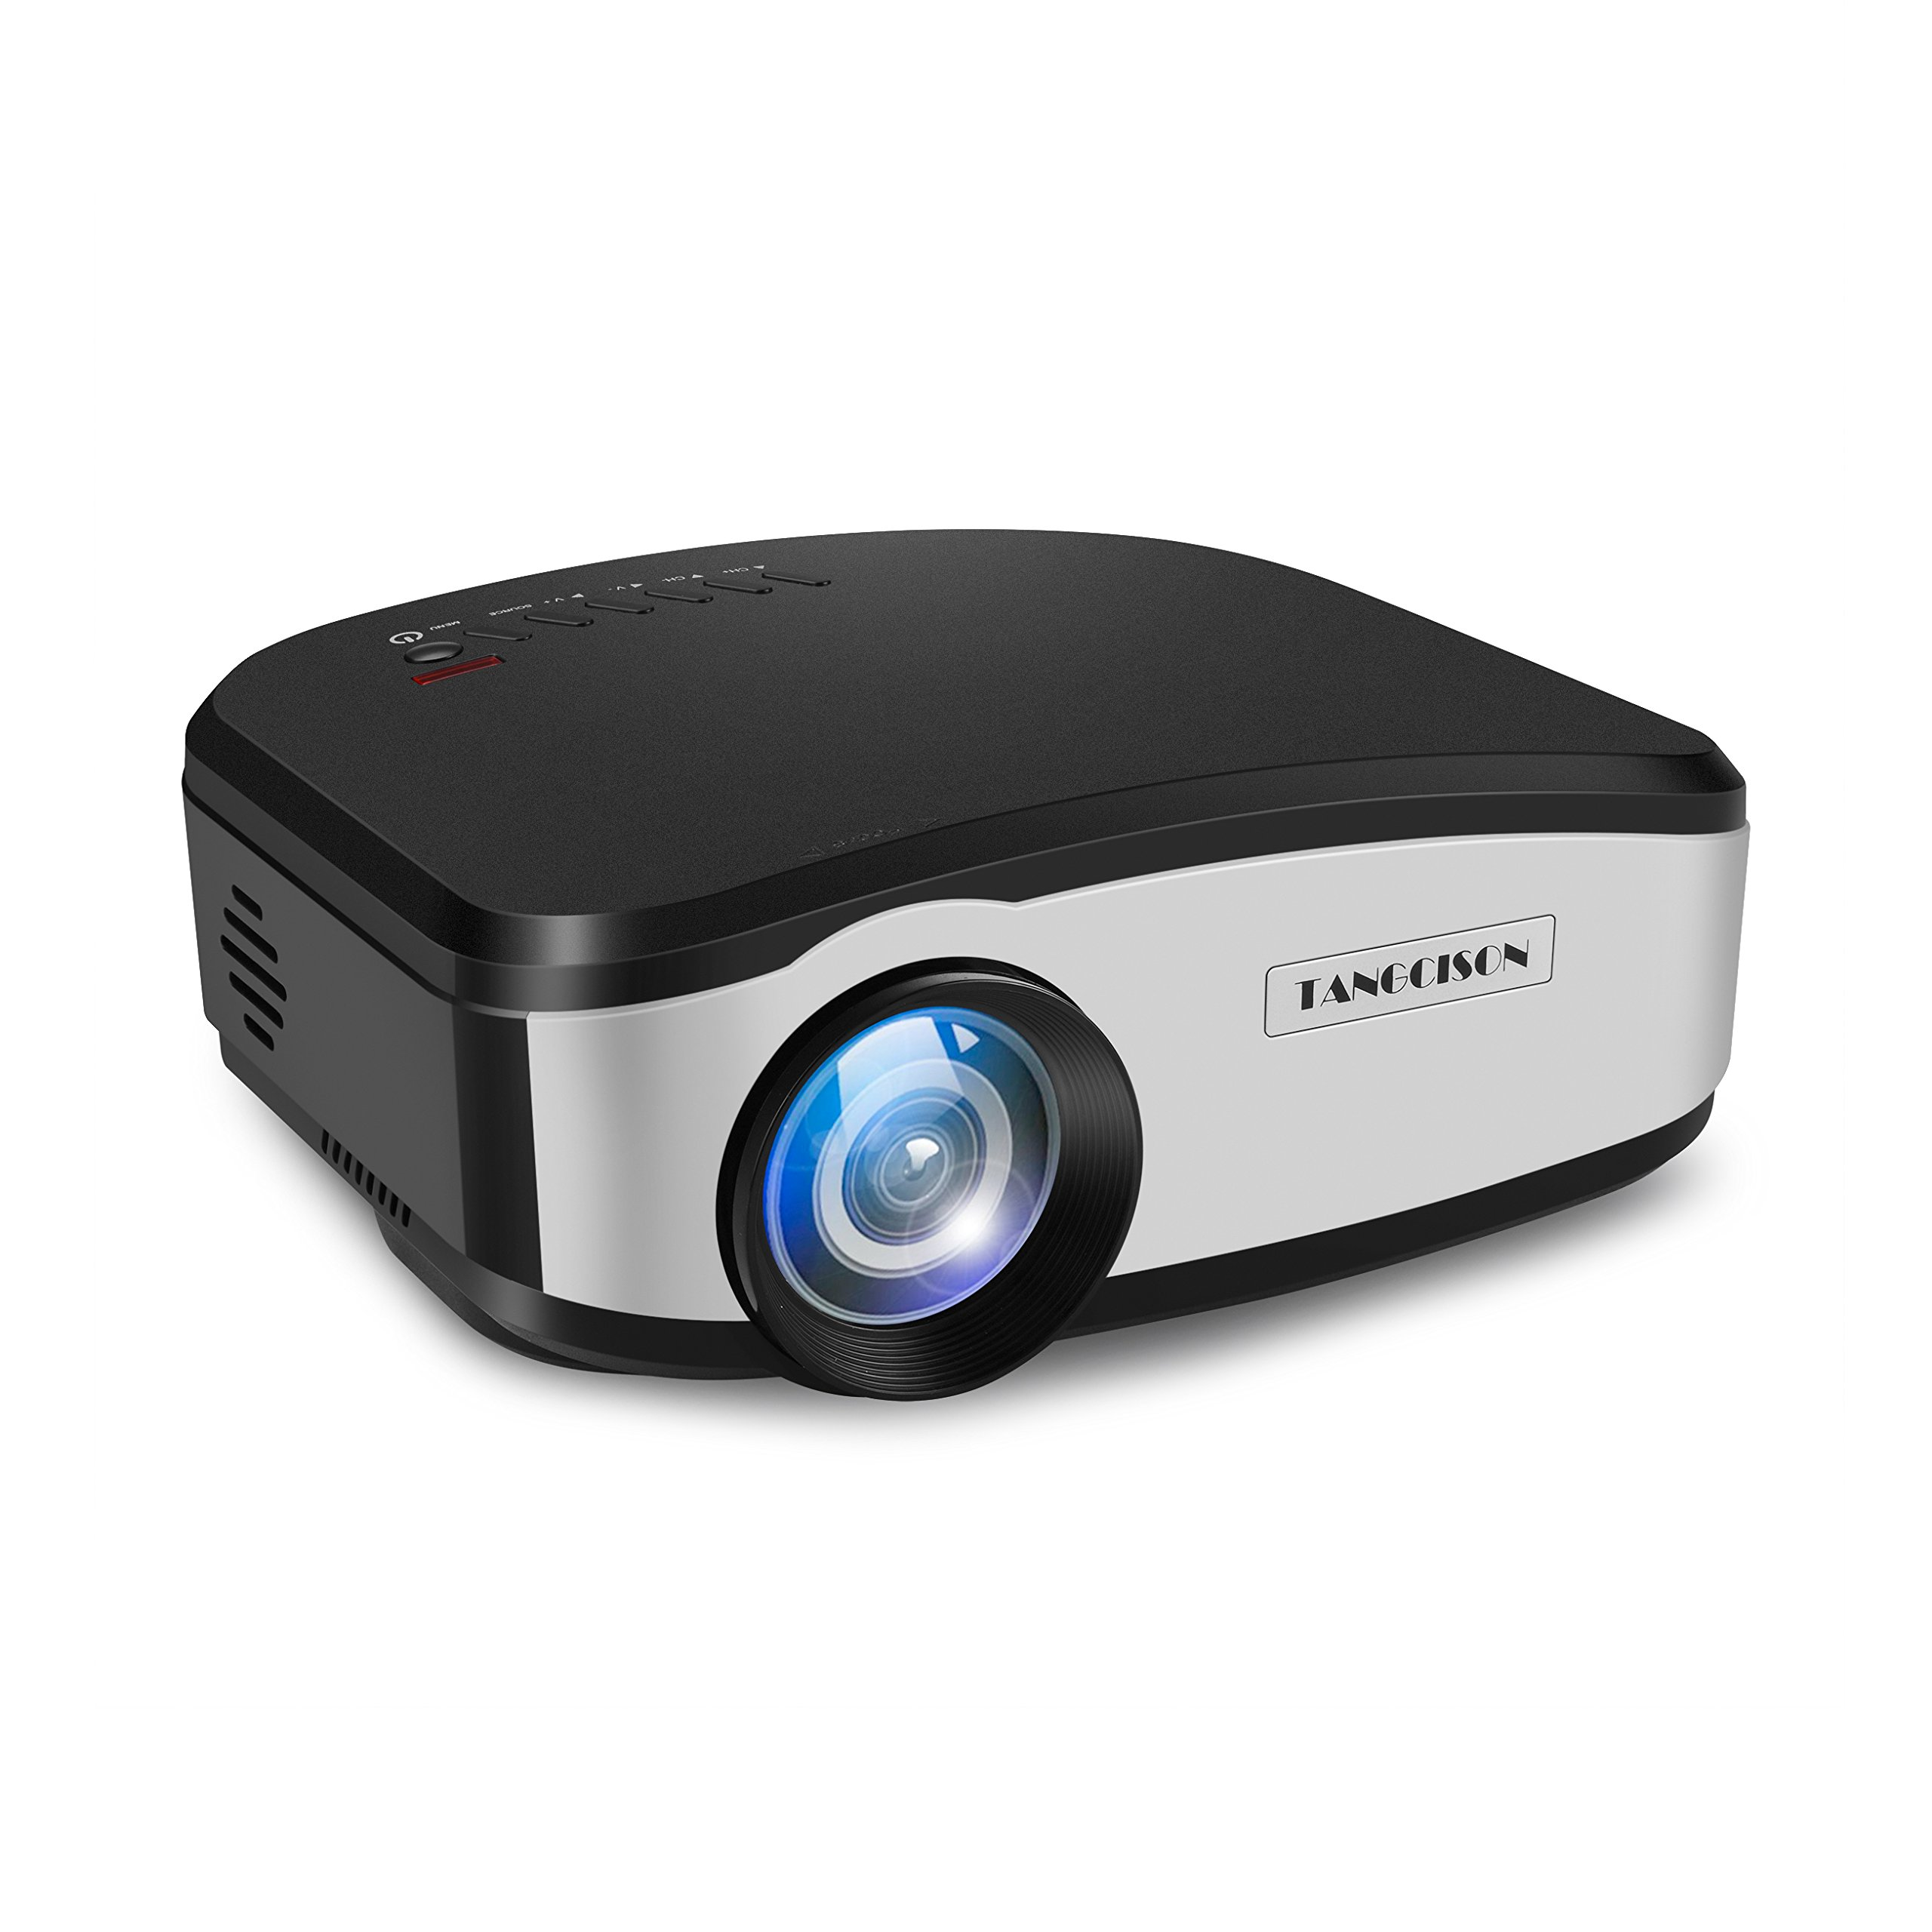 TANGCISON Video Projector,LCD Projector 1500Luminous 160''HD 1080P Projector Multimedia Home Theater Movies Projector for Cinema TV Laptop Game With HDMI USB VGA AV Input (Black)